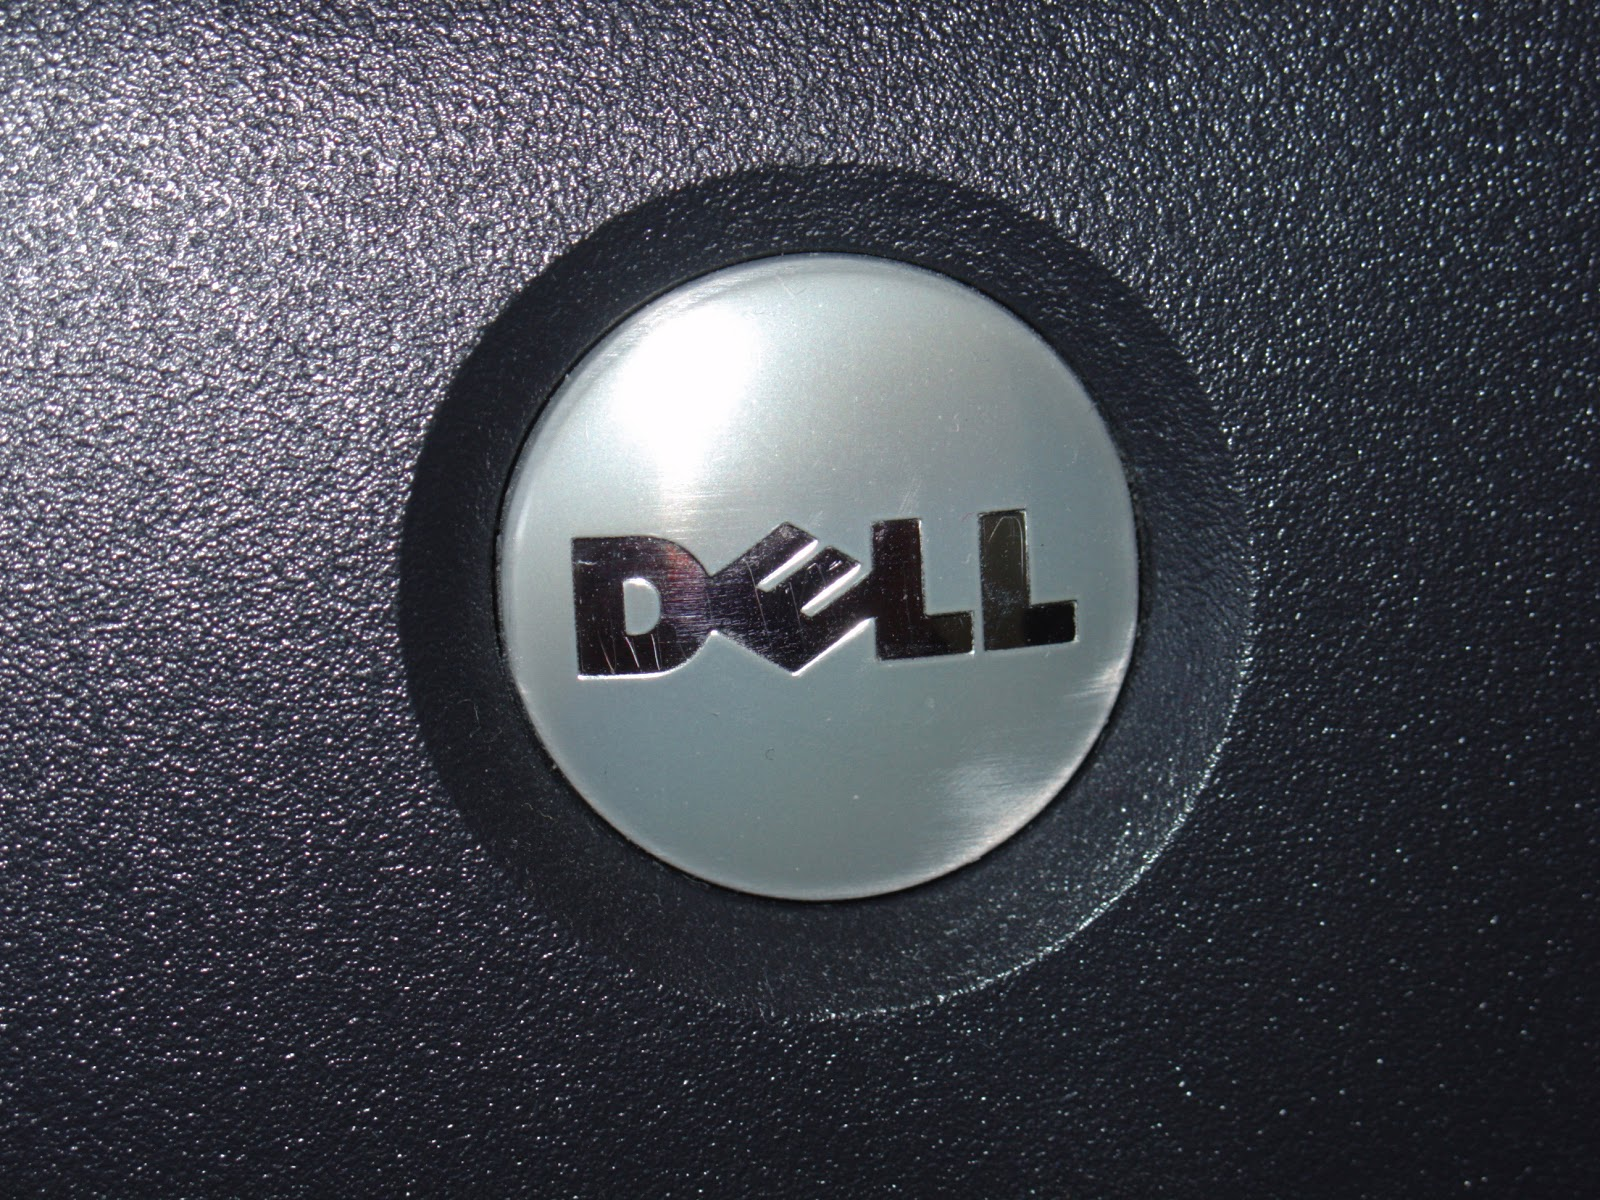 Dell Wallpaper Windows 10 72 Images: Dell Wallpapers For Windows 10